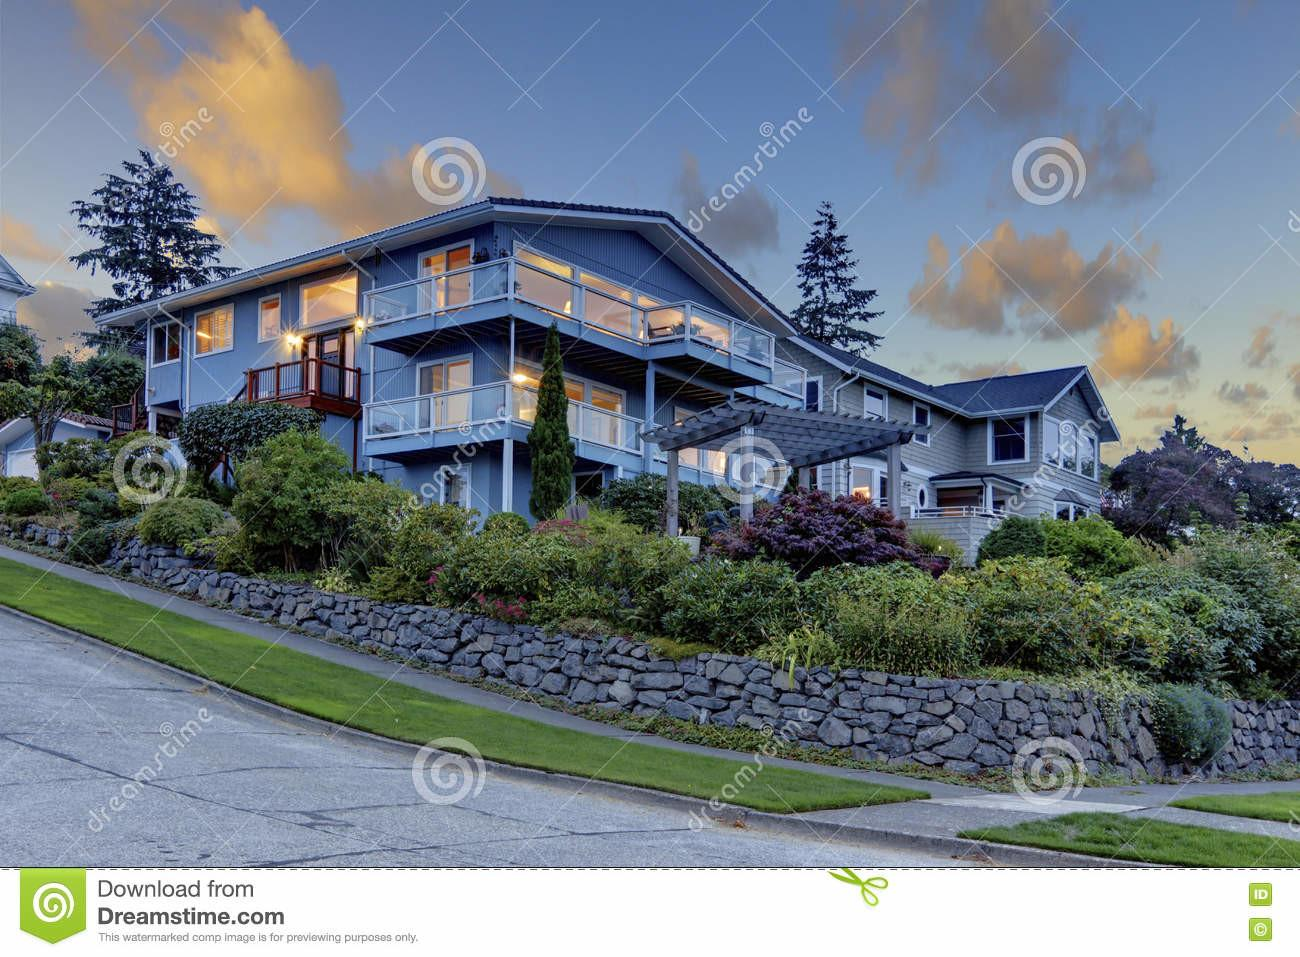 Large Three Story Tall Blue House Summer Landscape